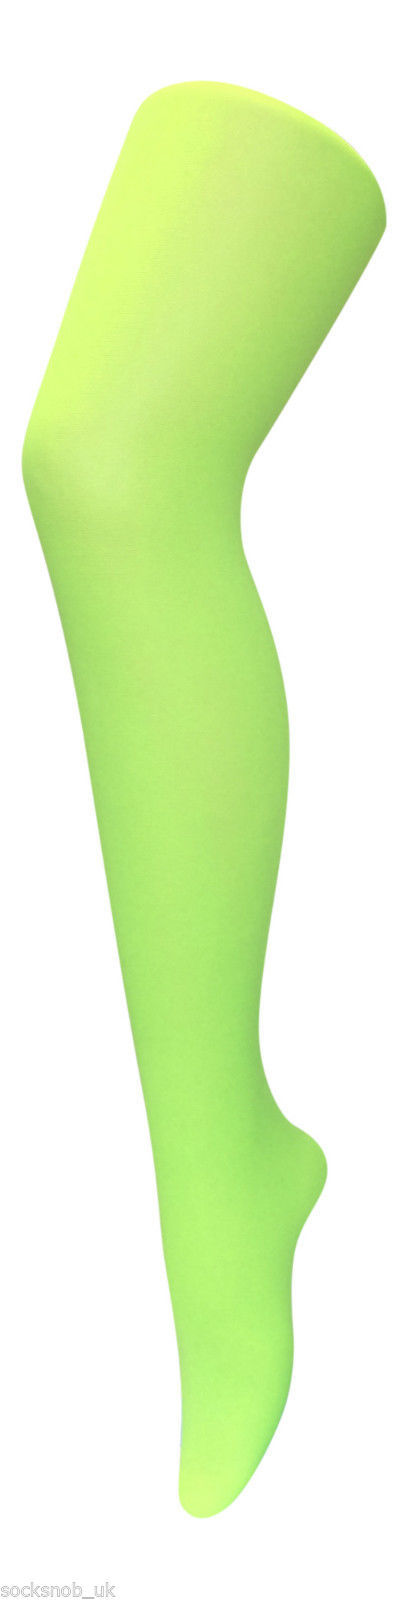 Women's Plain 40 Denier Opaque Bright Neon Tights, One size 8-14 uk, 36-42 eu